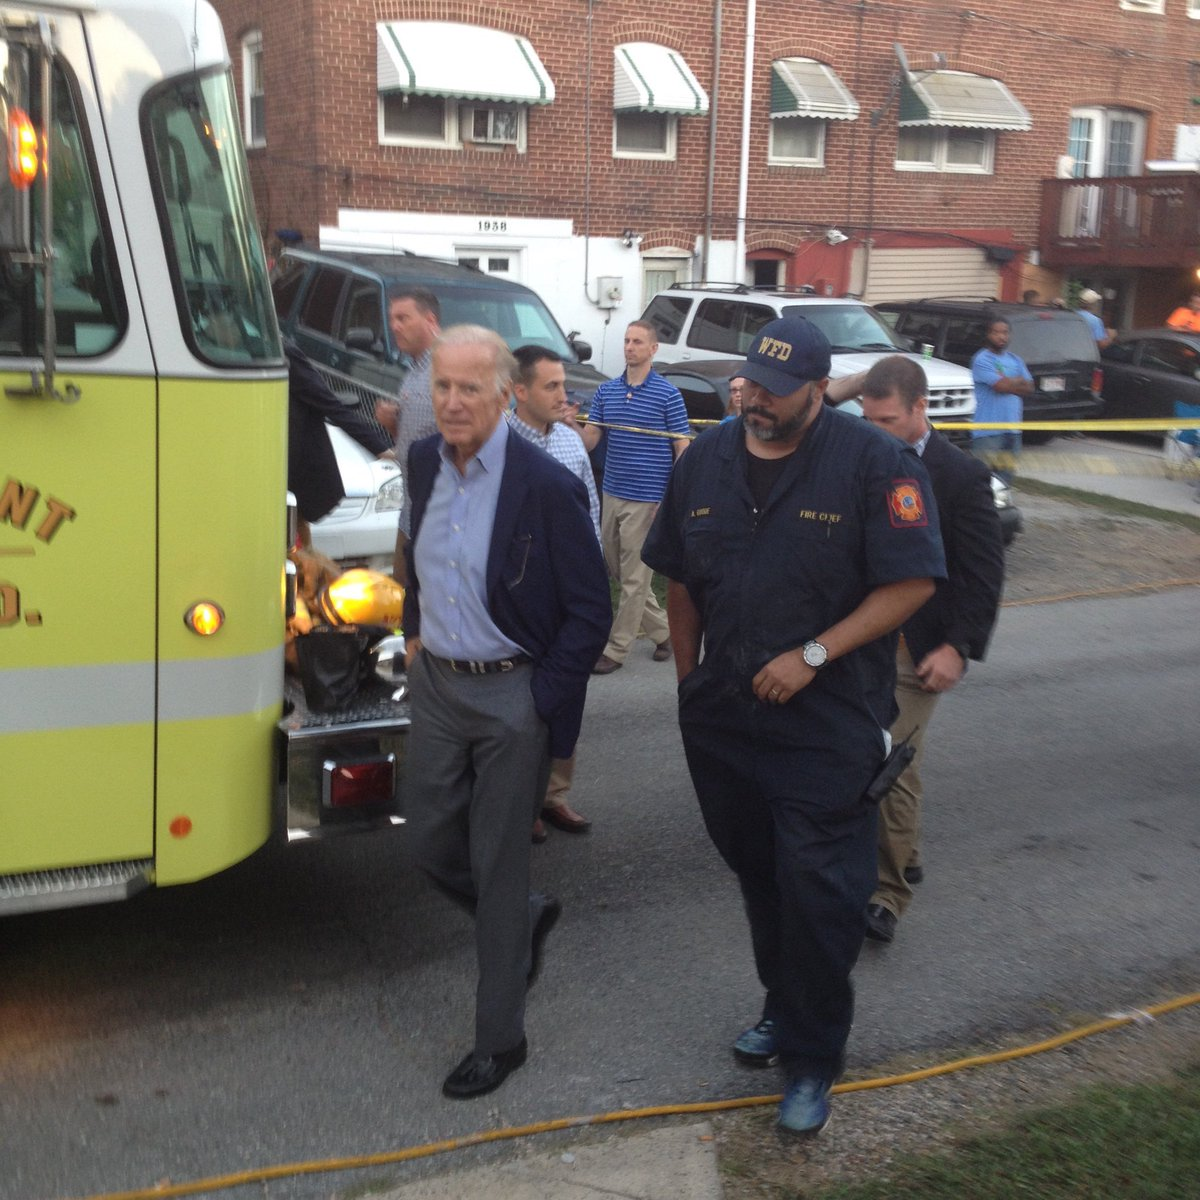 """Each time I've met @VP Biden he says """"please be safe at work"""".  Today, DE lost 2 #firefighters. He went to the scene to offer condolences."""